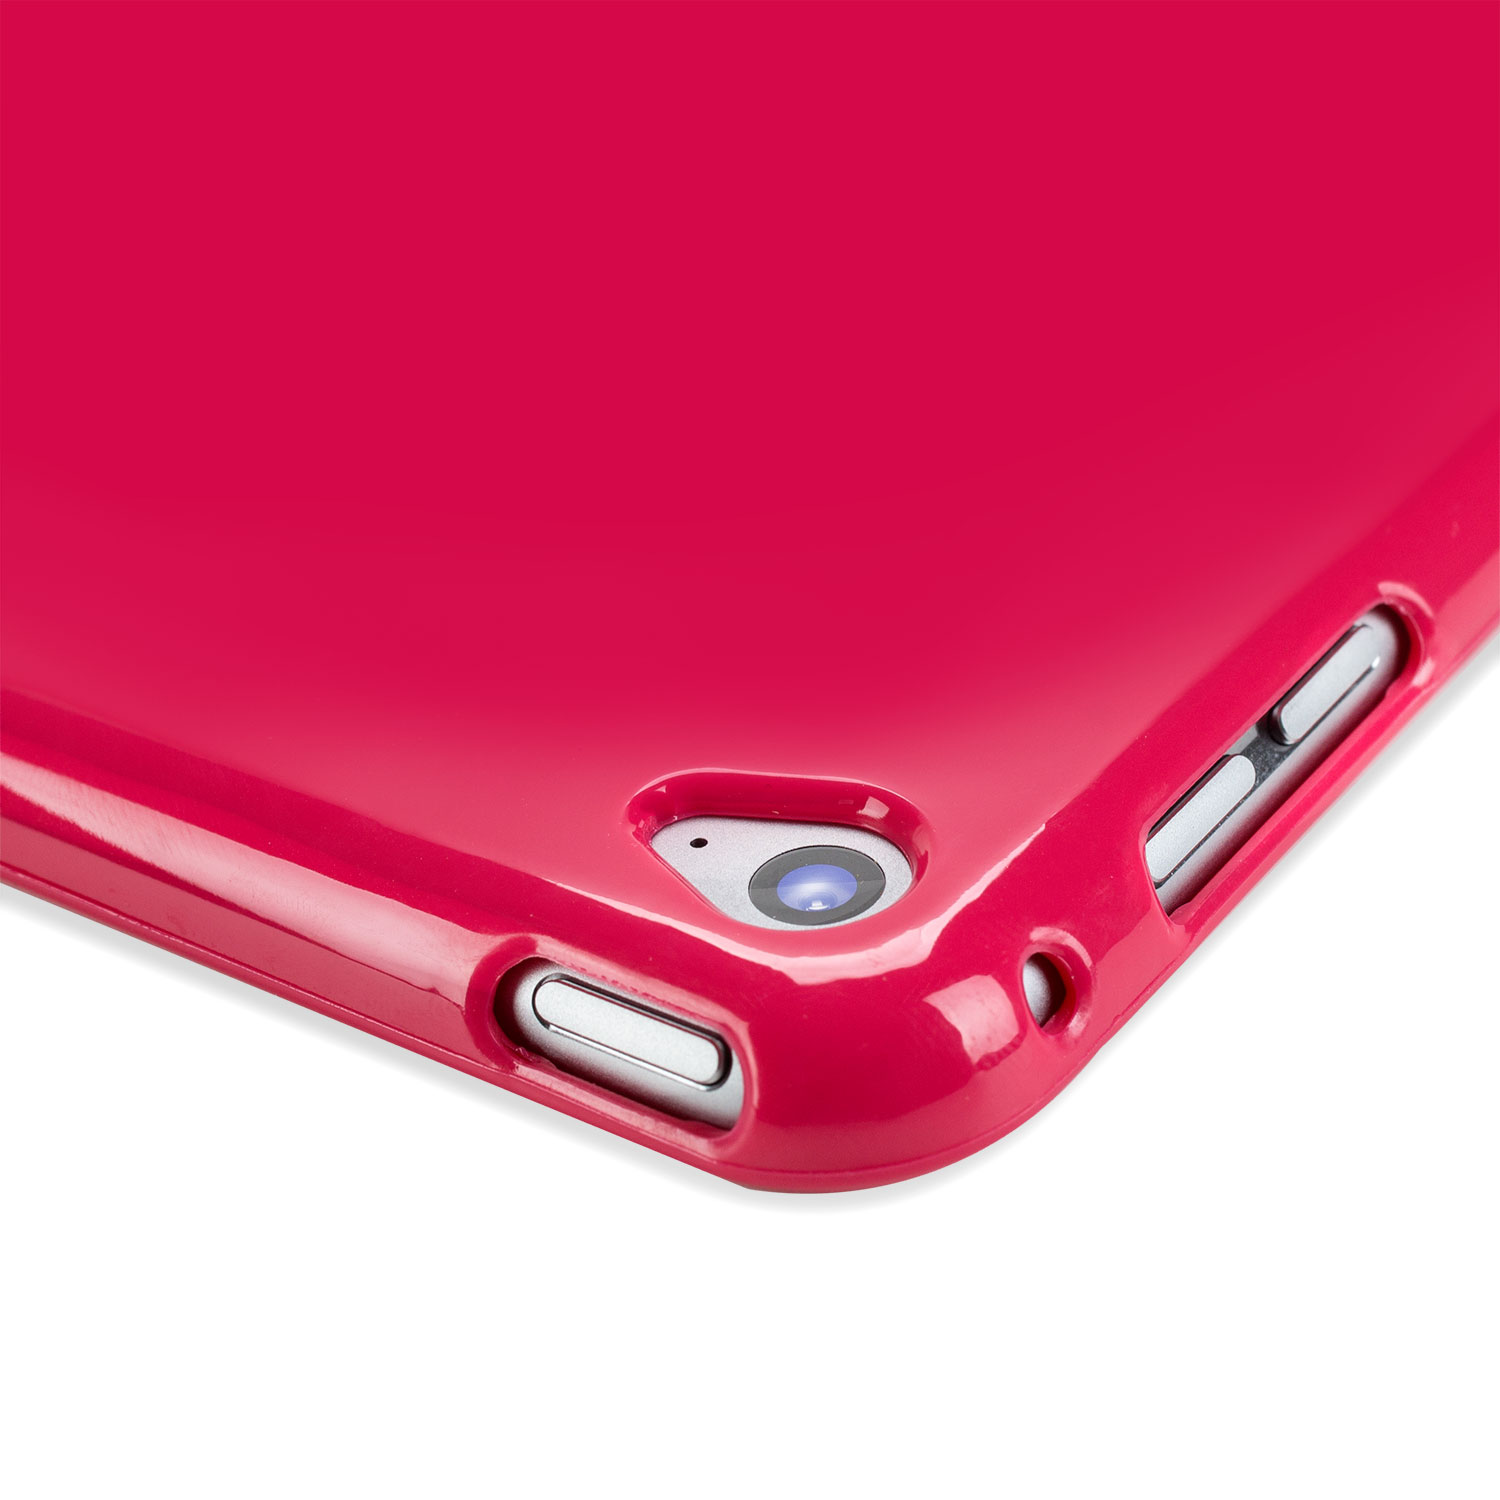 Encase FlexiShield iPad Air 2 Gel Case - Hot Pink